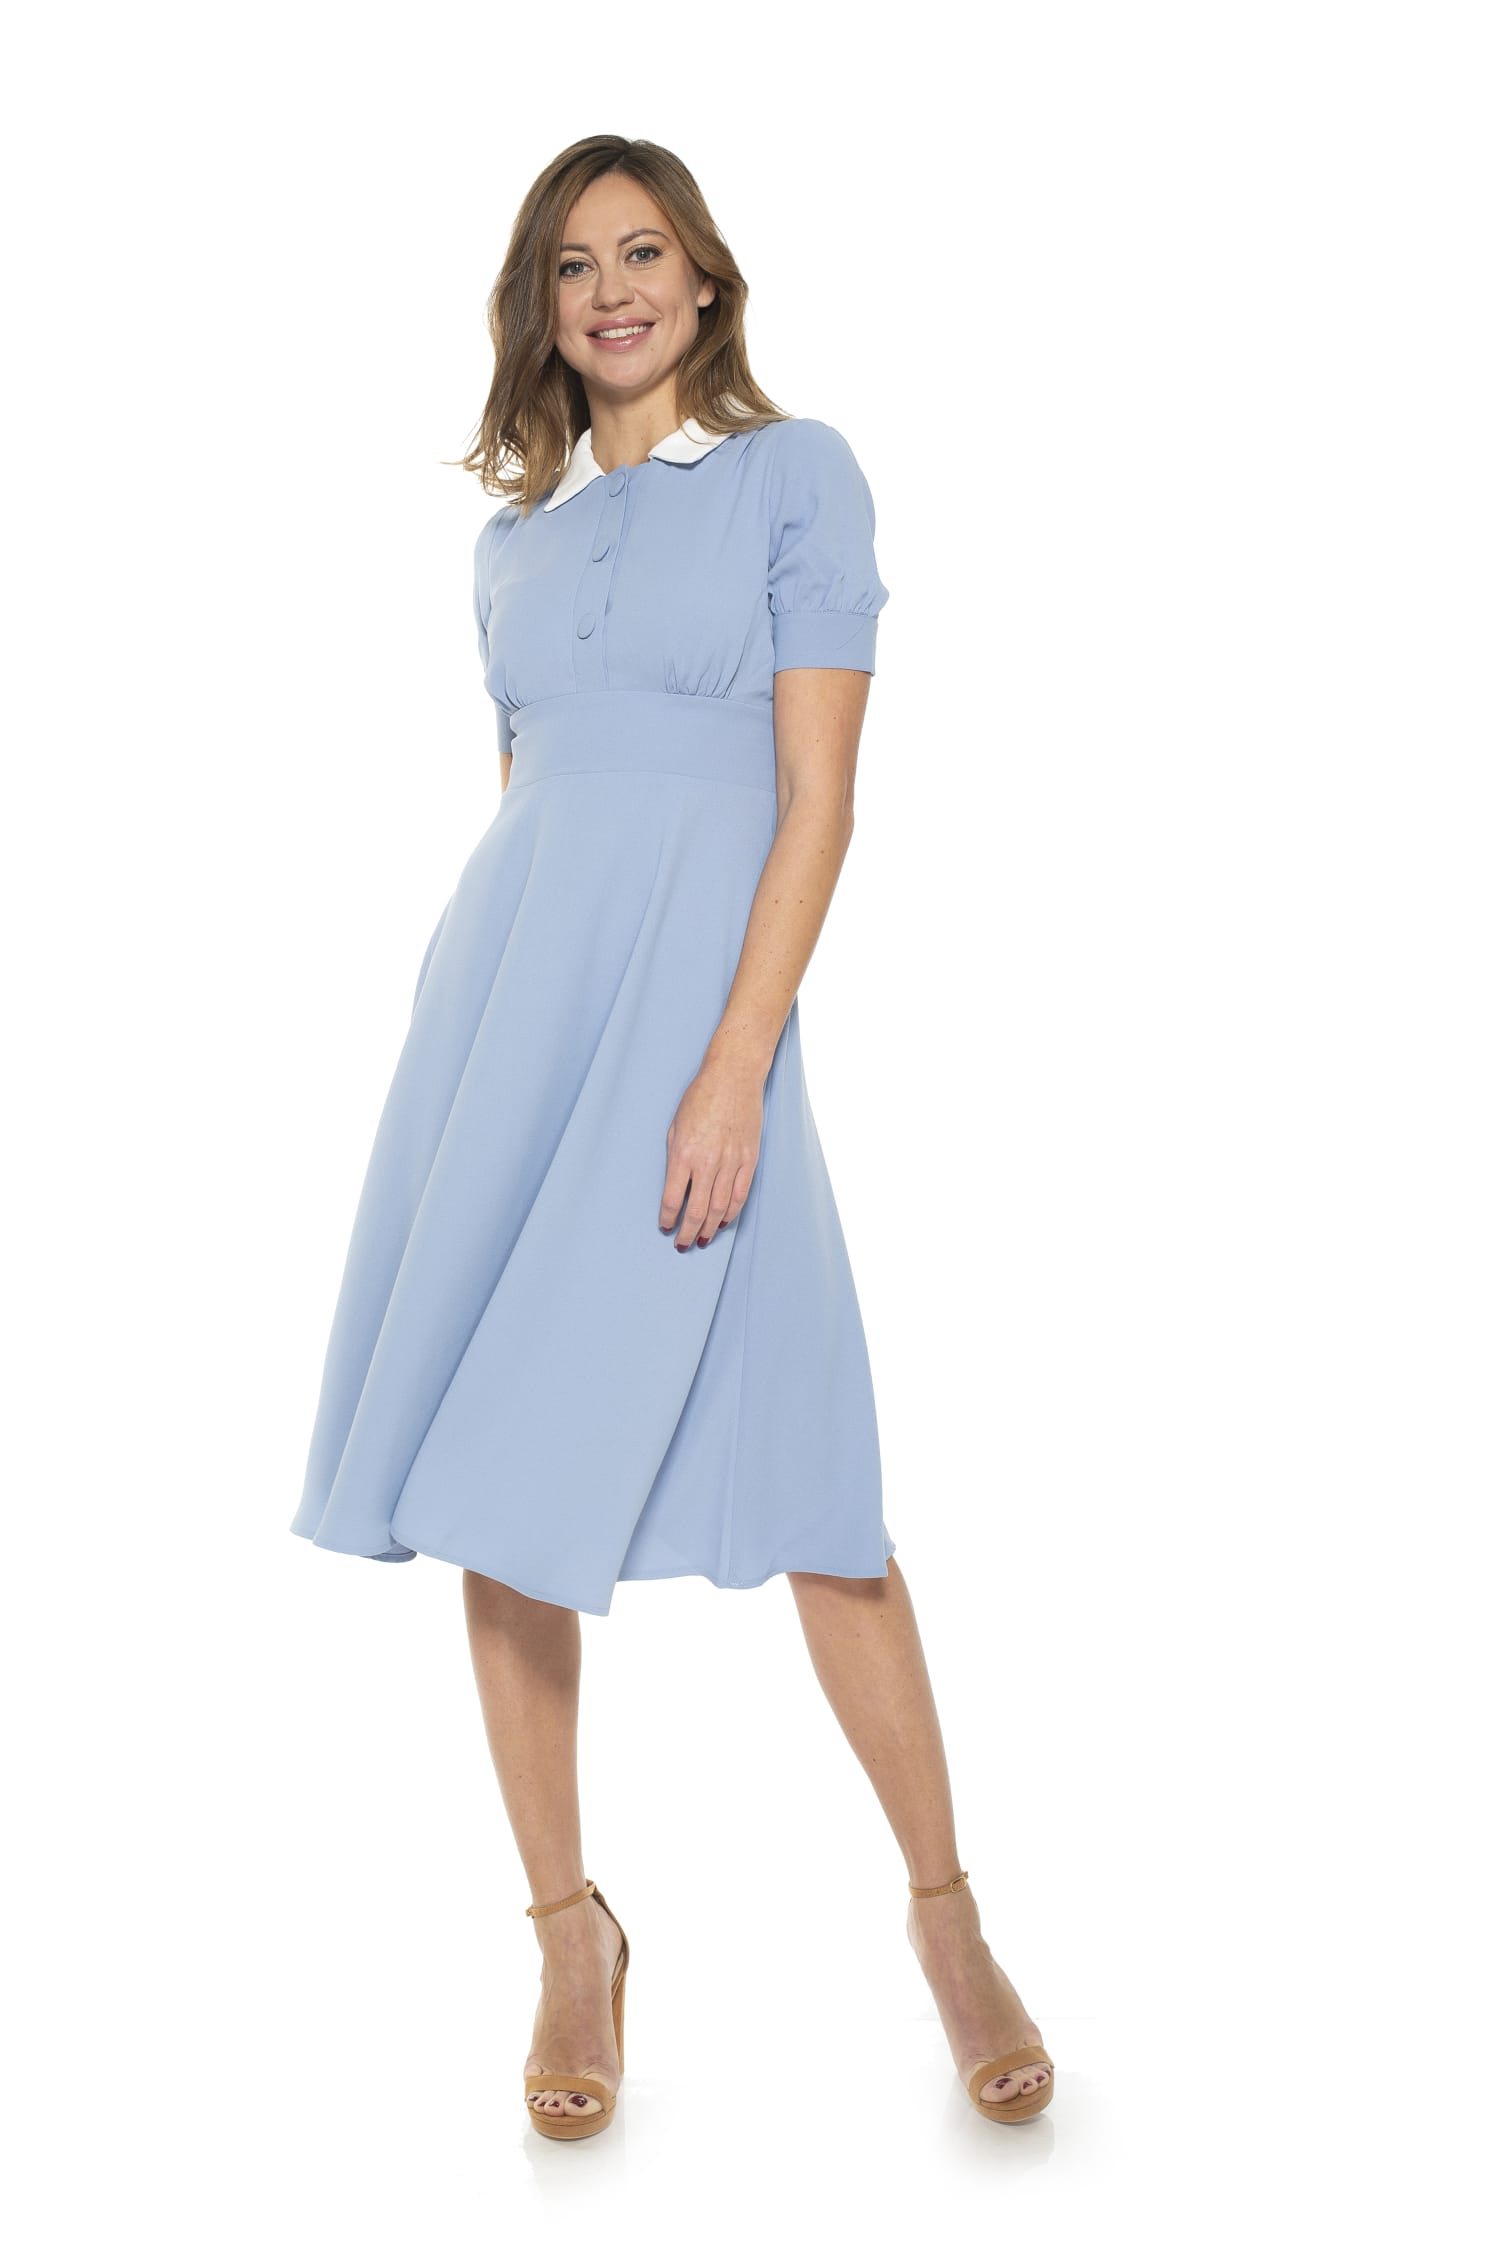 1930s Day Dresses, Afternoon Dresses History Emery Cap Sleeve Collared Fit and Flare Dress $106.95 AT vintagedancer.com